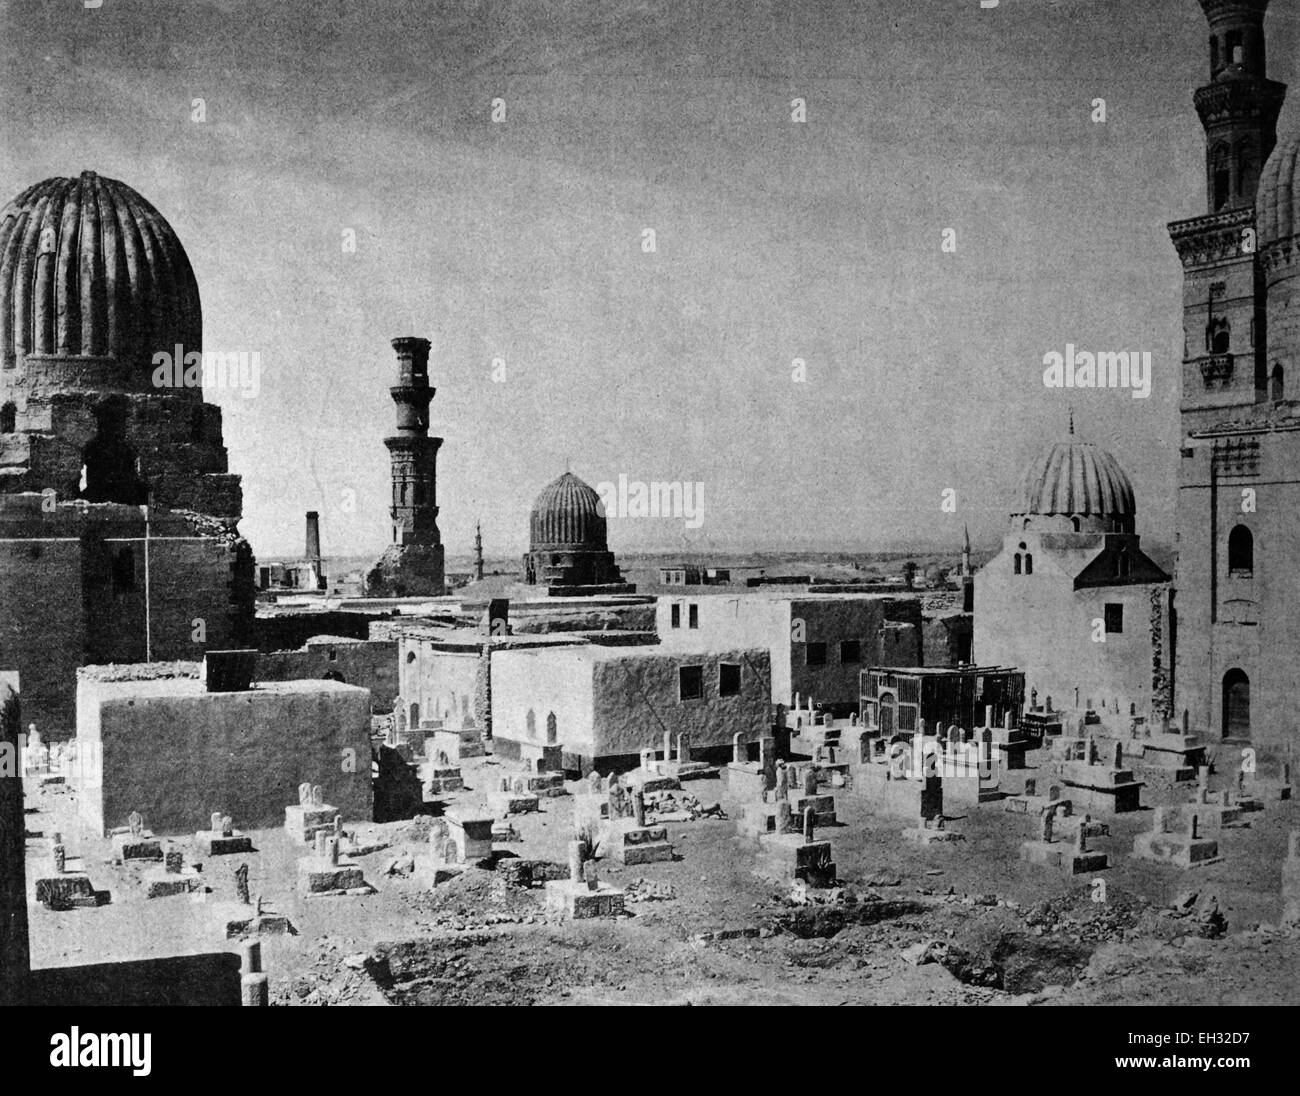 One of the first autotype prints, Mahomet Cemetery, historic photograph, 1884, Cairo, Egypt, Africa - Stock Image